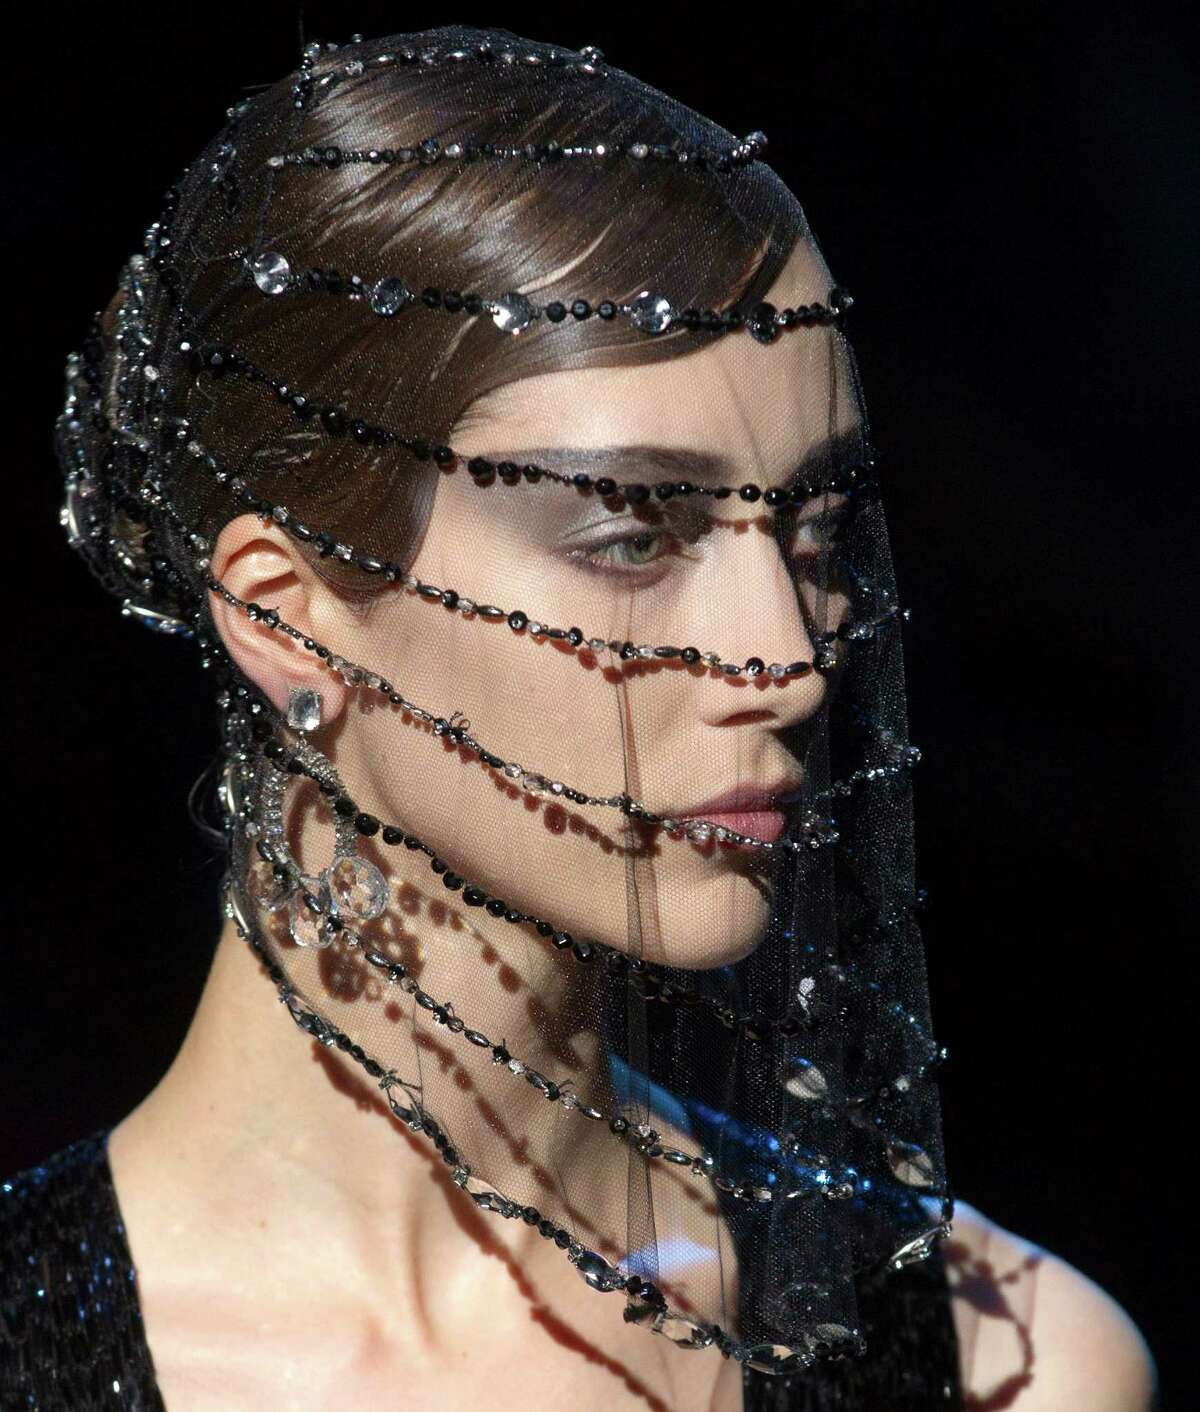 A model wears a creation by Italian designer Giorgio Armani as part of his presentation for Women's Fall Winter 2013 haute couture fashion collection, in Paris, France, Tuesday, July 3, 2012.